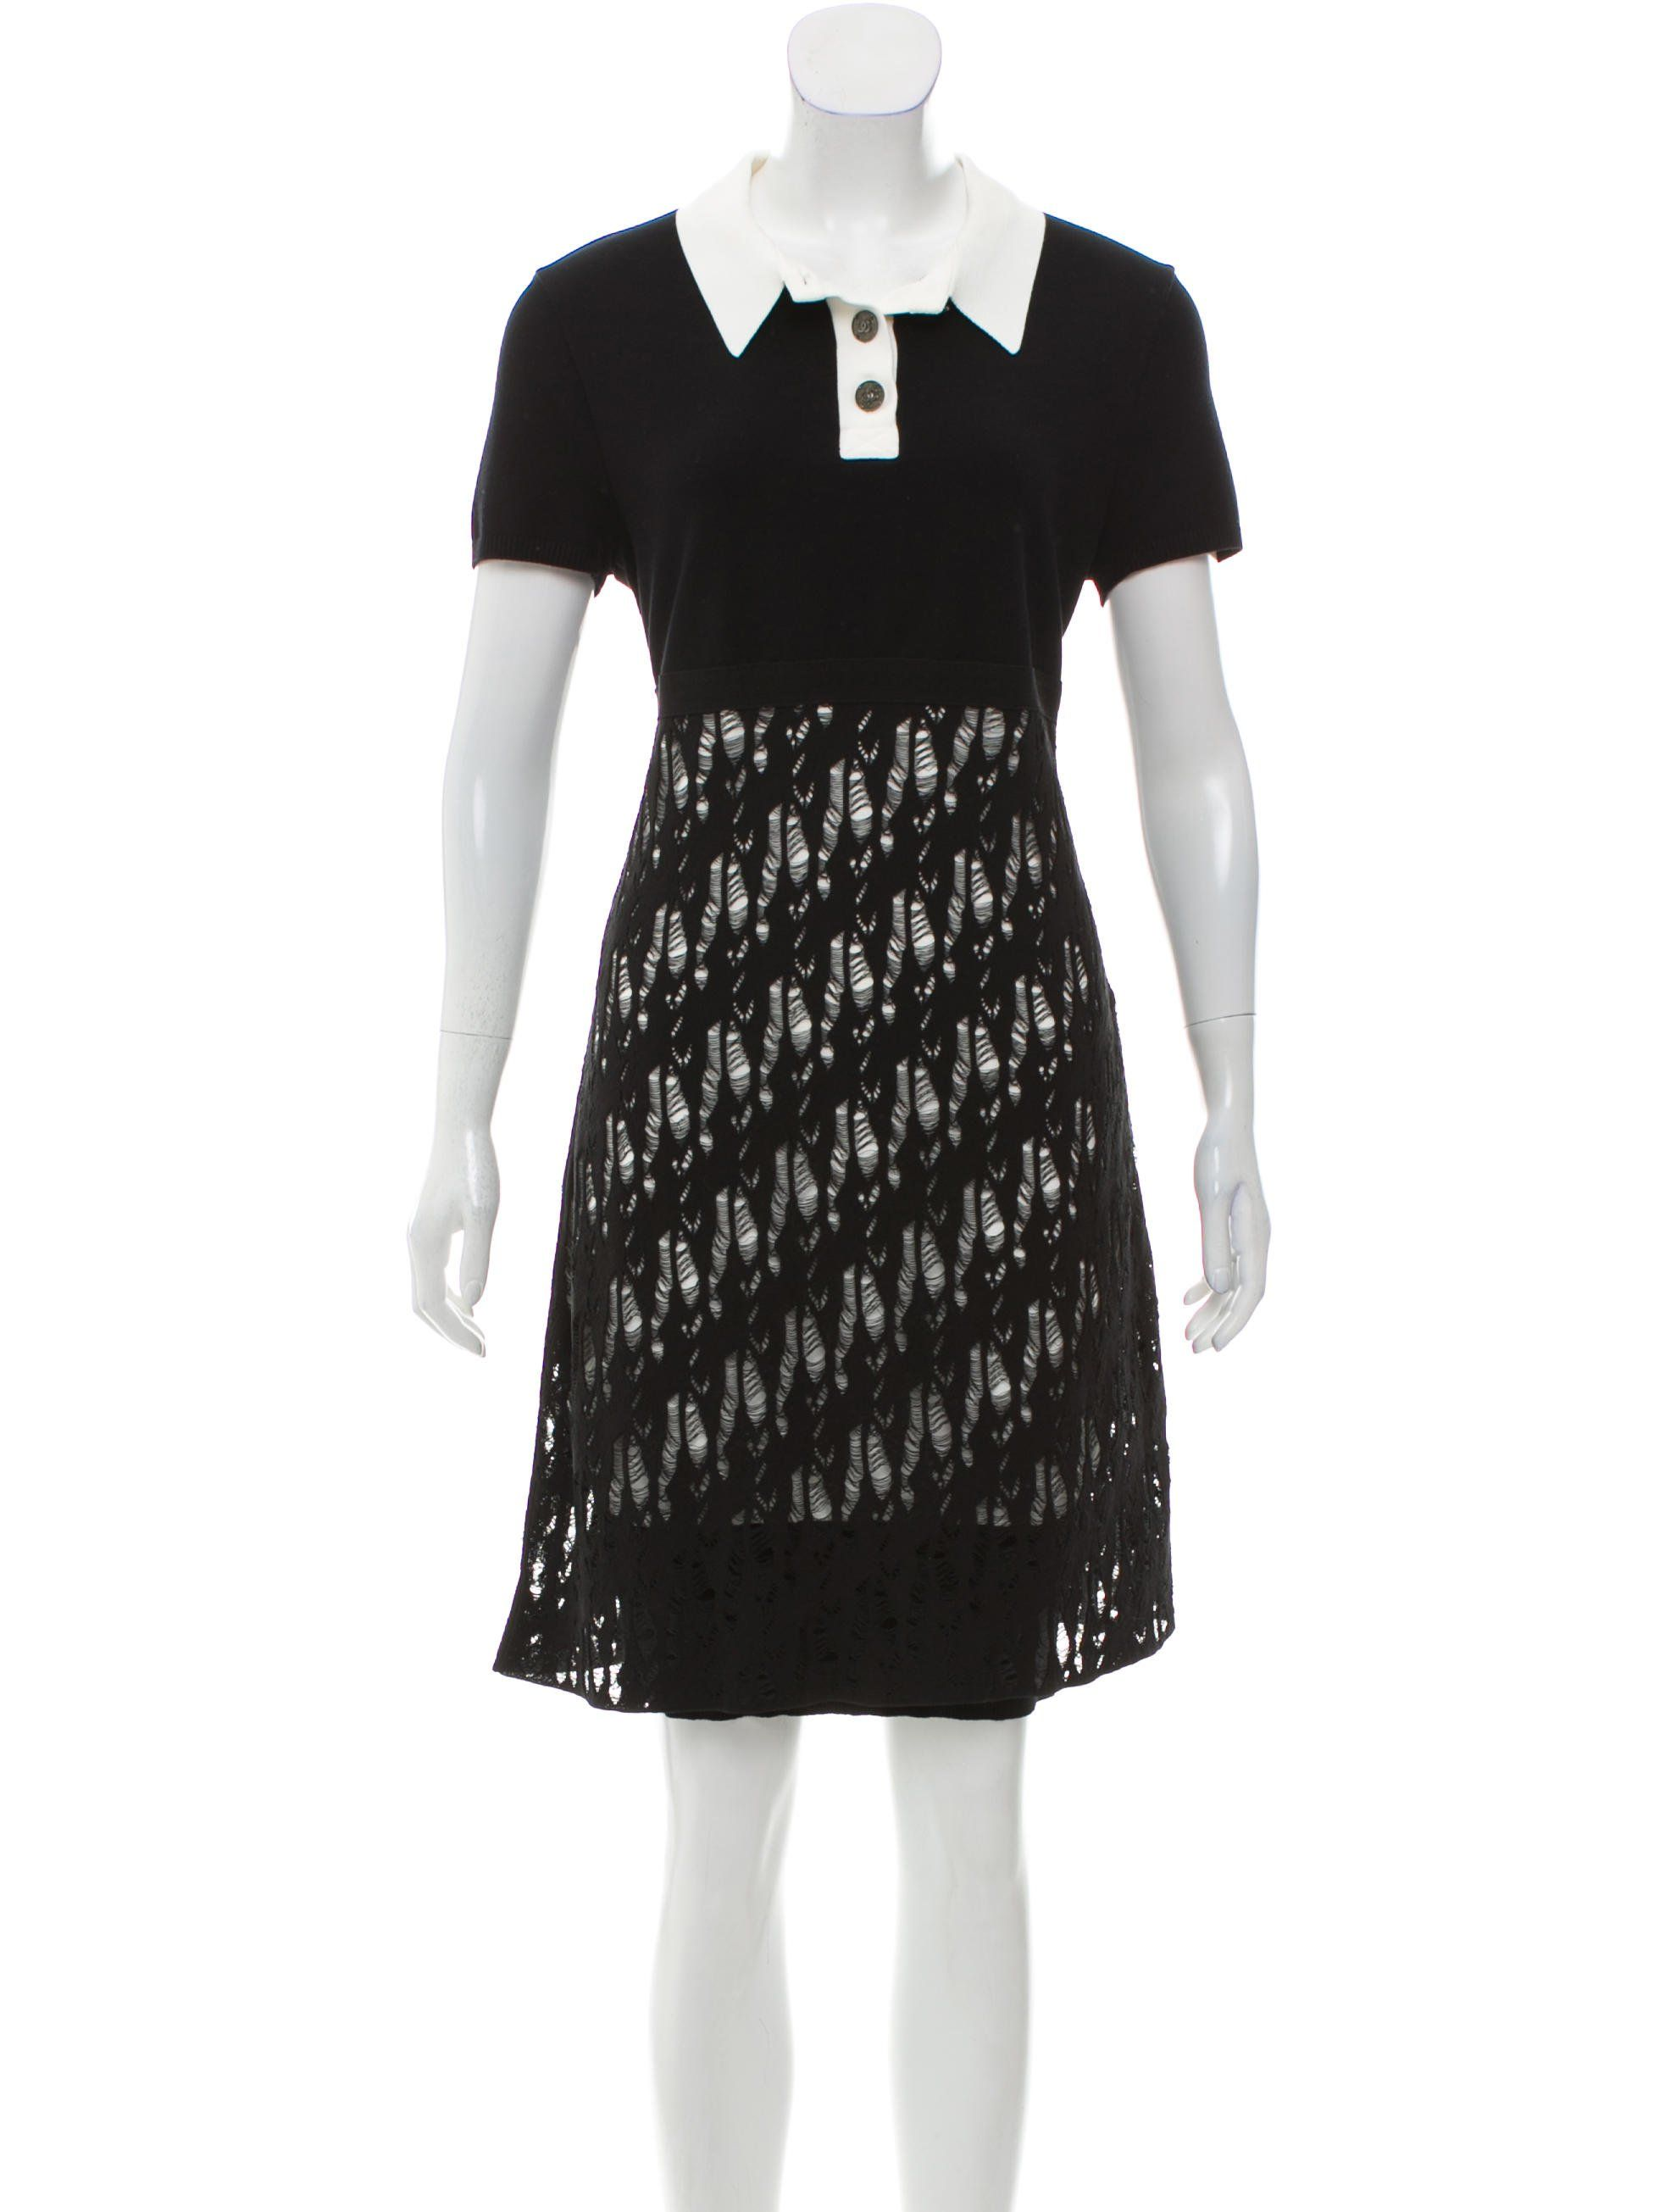 From The Spring 2012 Collection Black And Ivory Chanel Short Sleeve Knit Dress With Pointed Collar Distressed Knit Skirt And Conce Knit Dress Dresses Fashion [ 2610 x 1978 Pixel ]